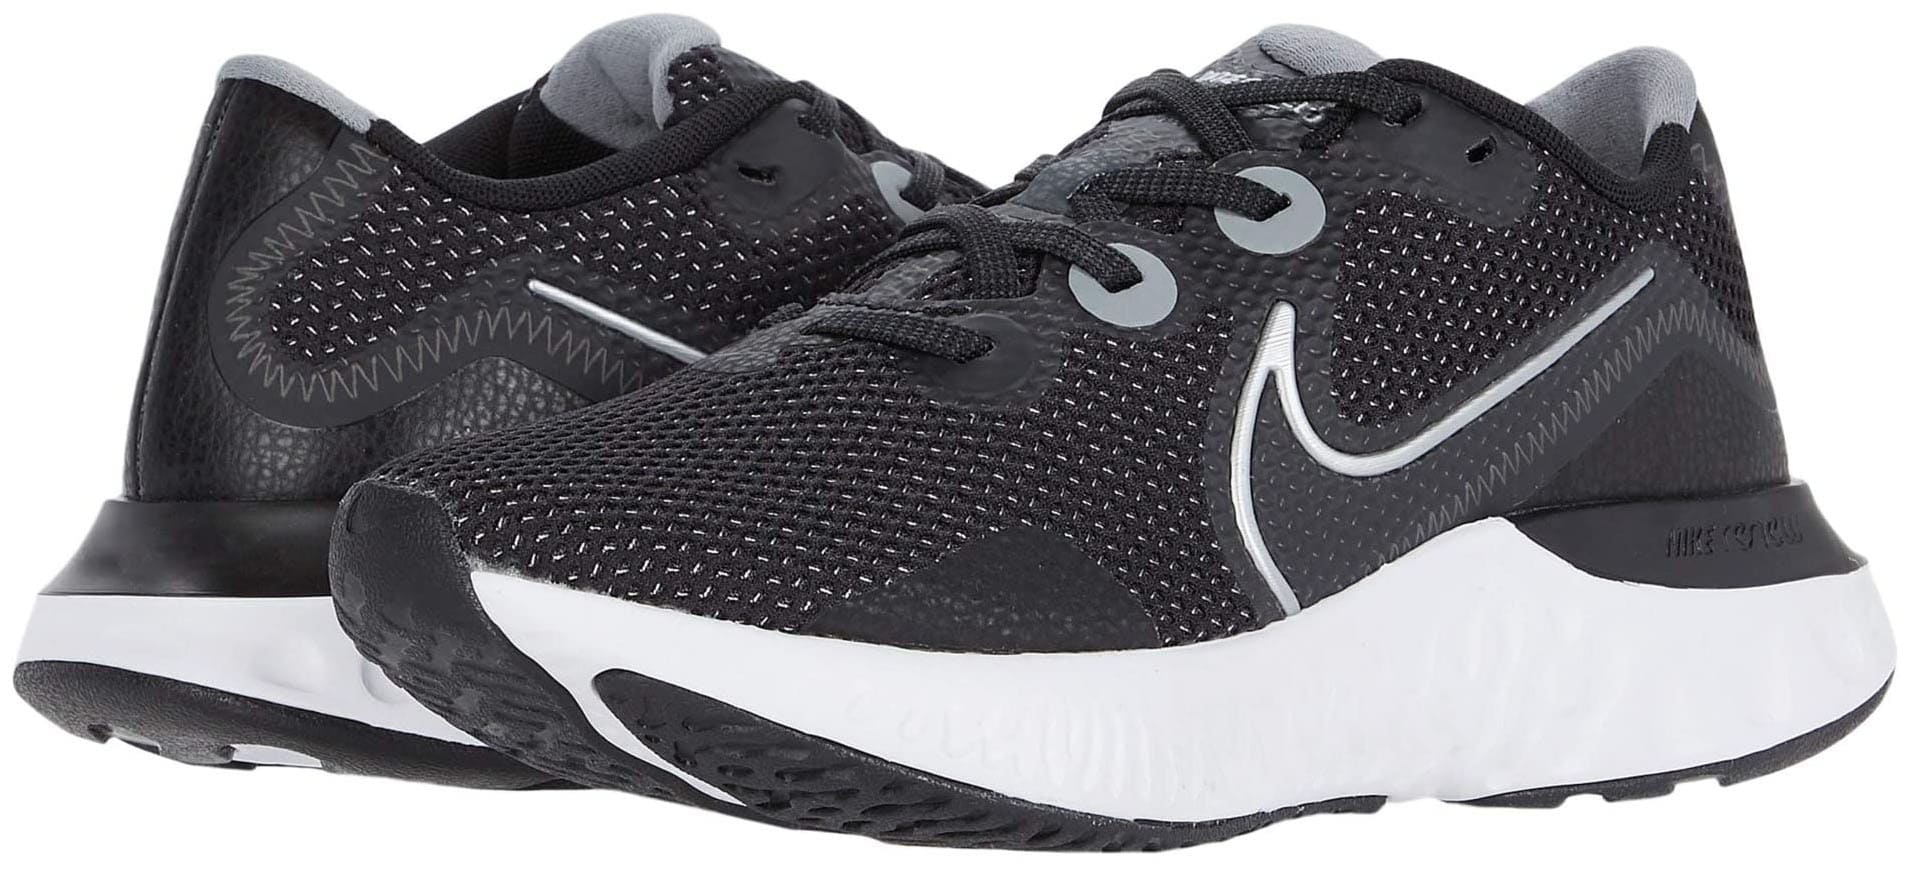 The Nike Renew Run is built for everyday runners who are looking for comfort and stability